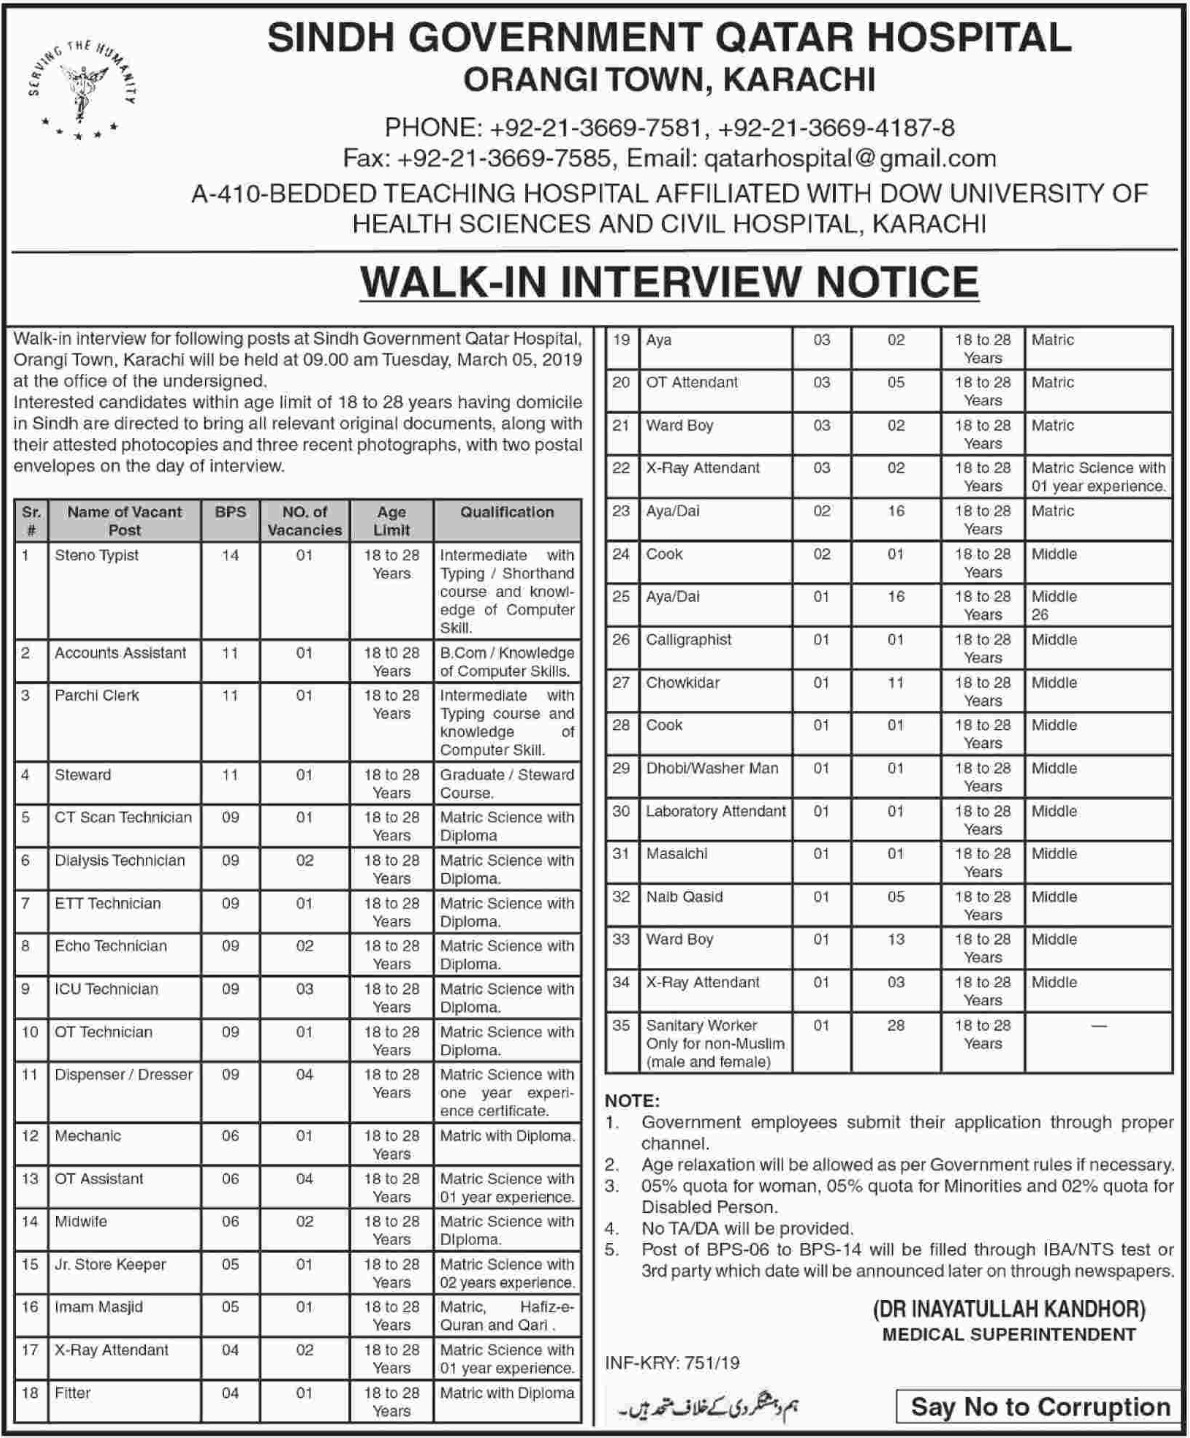 Sindh Government Qatar Hospital Karachi Jobs 2019 Latest